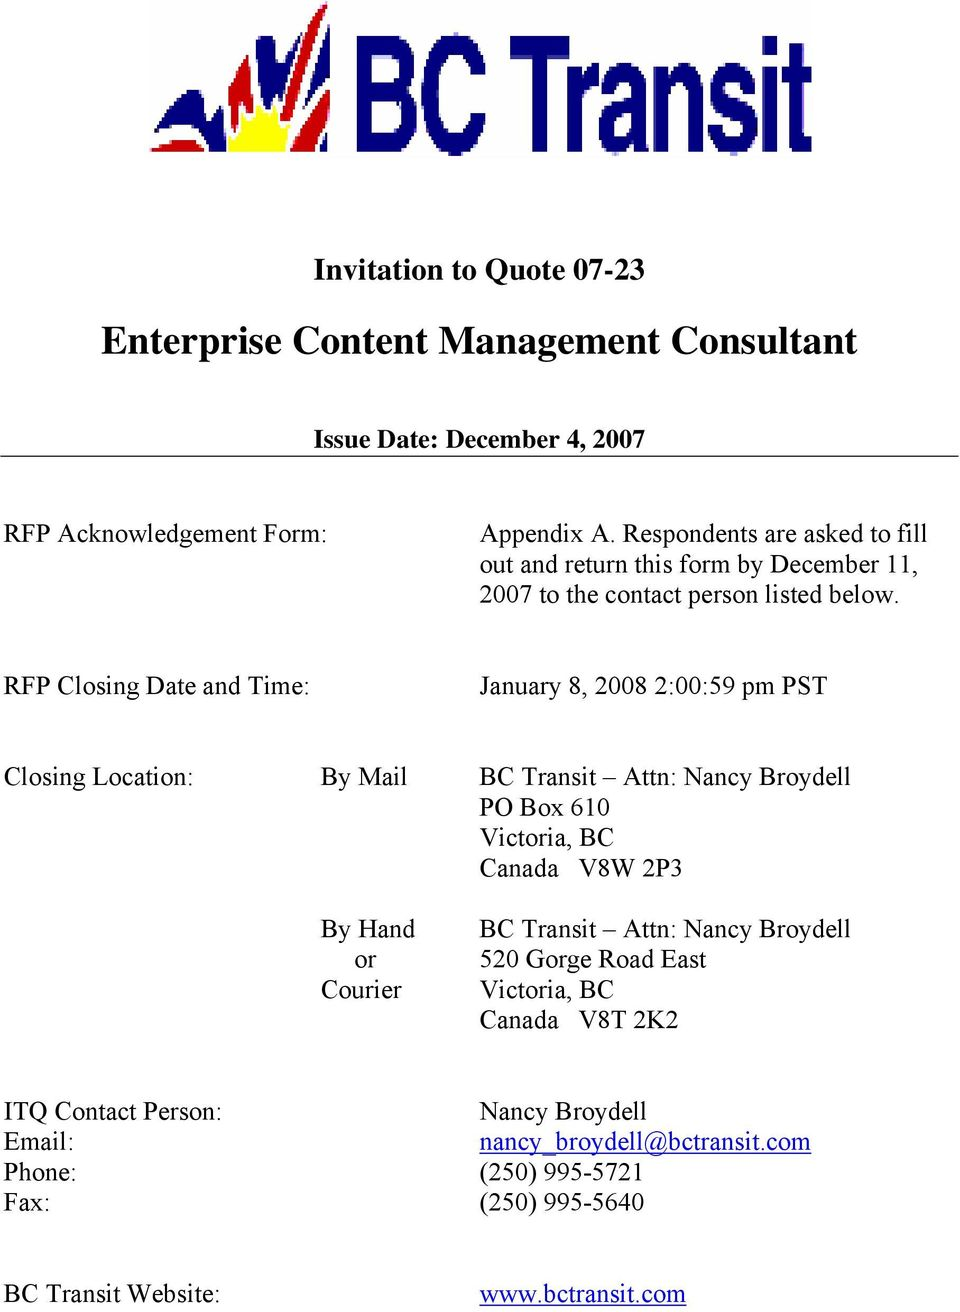 RFP Closing Date and Time: January 8, 2008 2:00:59 pm PST Closing Location: By Mail BC Transit Attn: Nancy Broydell PO Box 610 Victoria, BC Canada V8W 2P3 By Hand